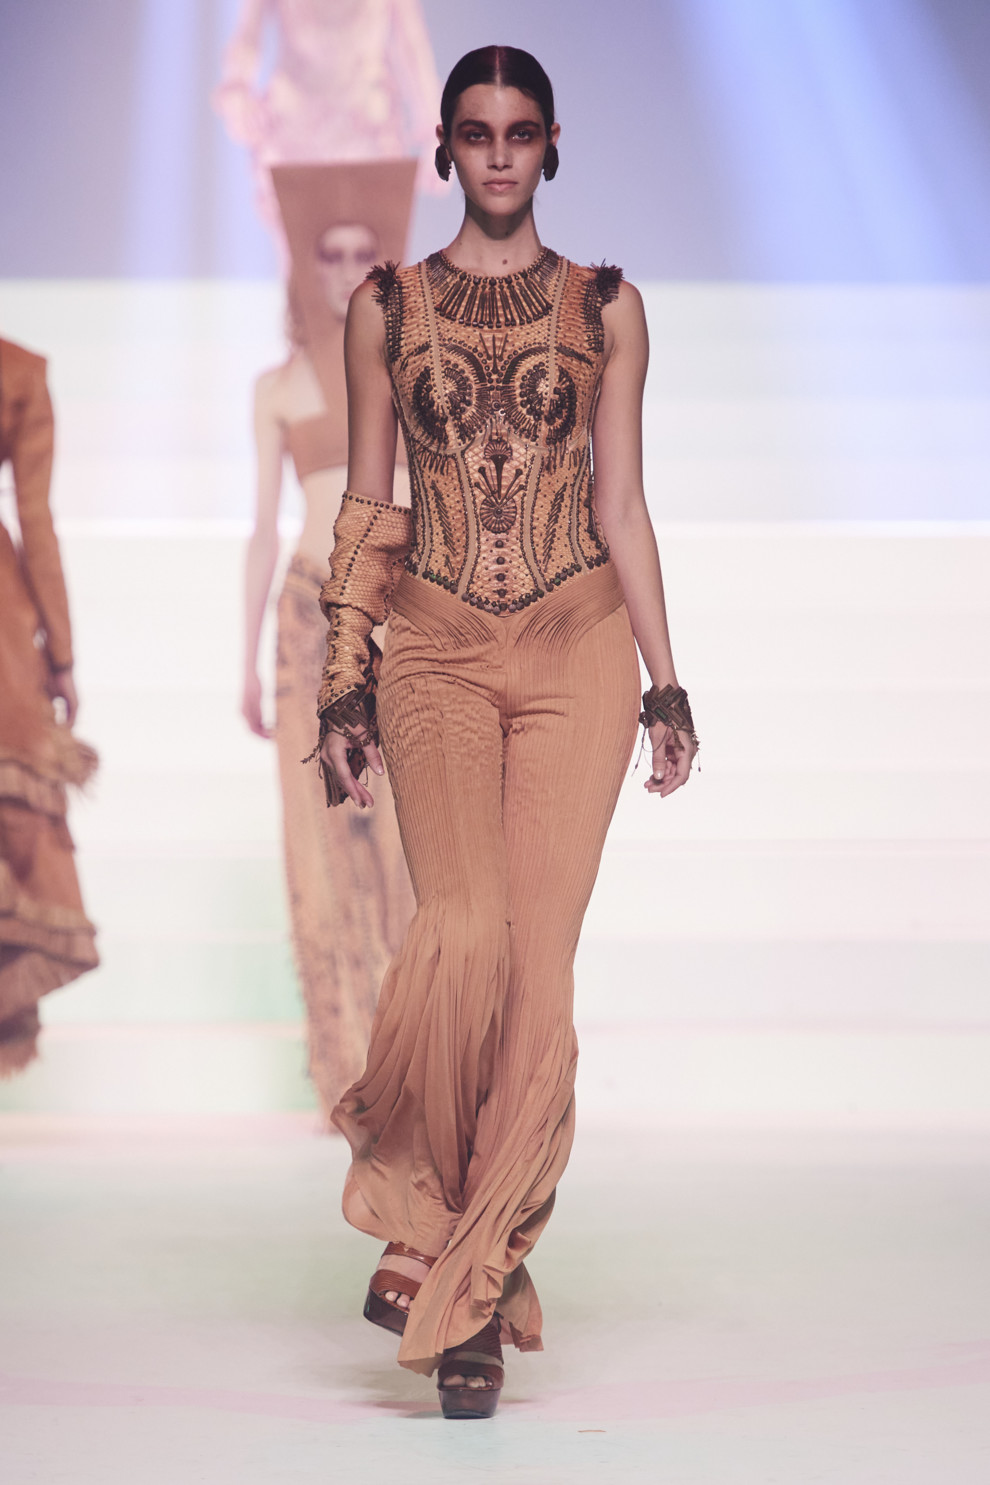 Jean Paul Gaultier Couture весна-лето 2020